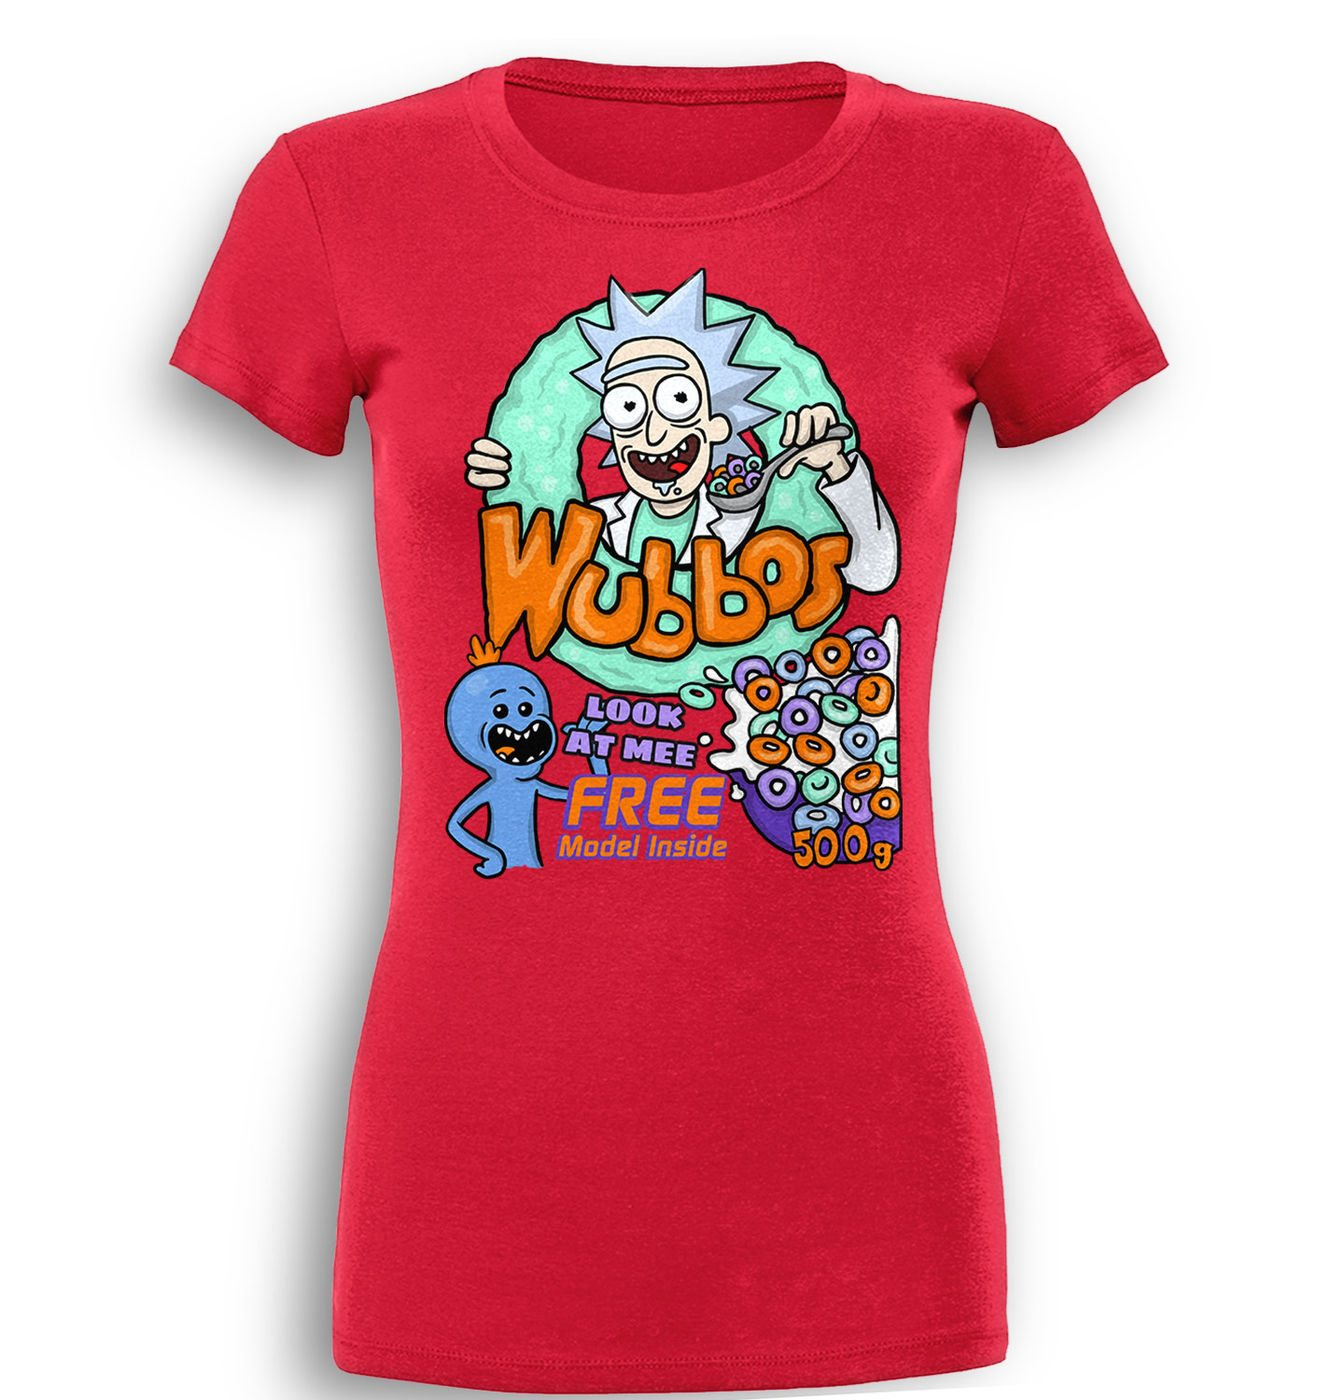 Wubbos Cereal premium women's t-shirt by Something Geeky